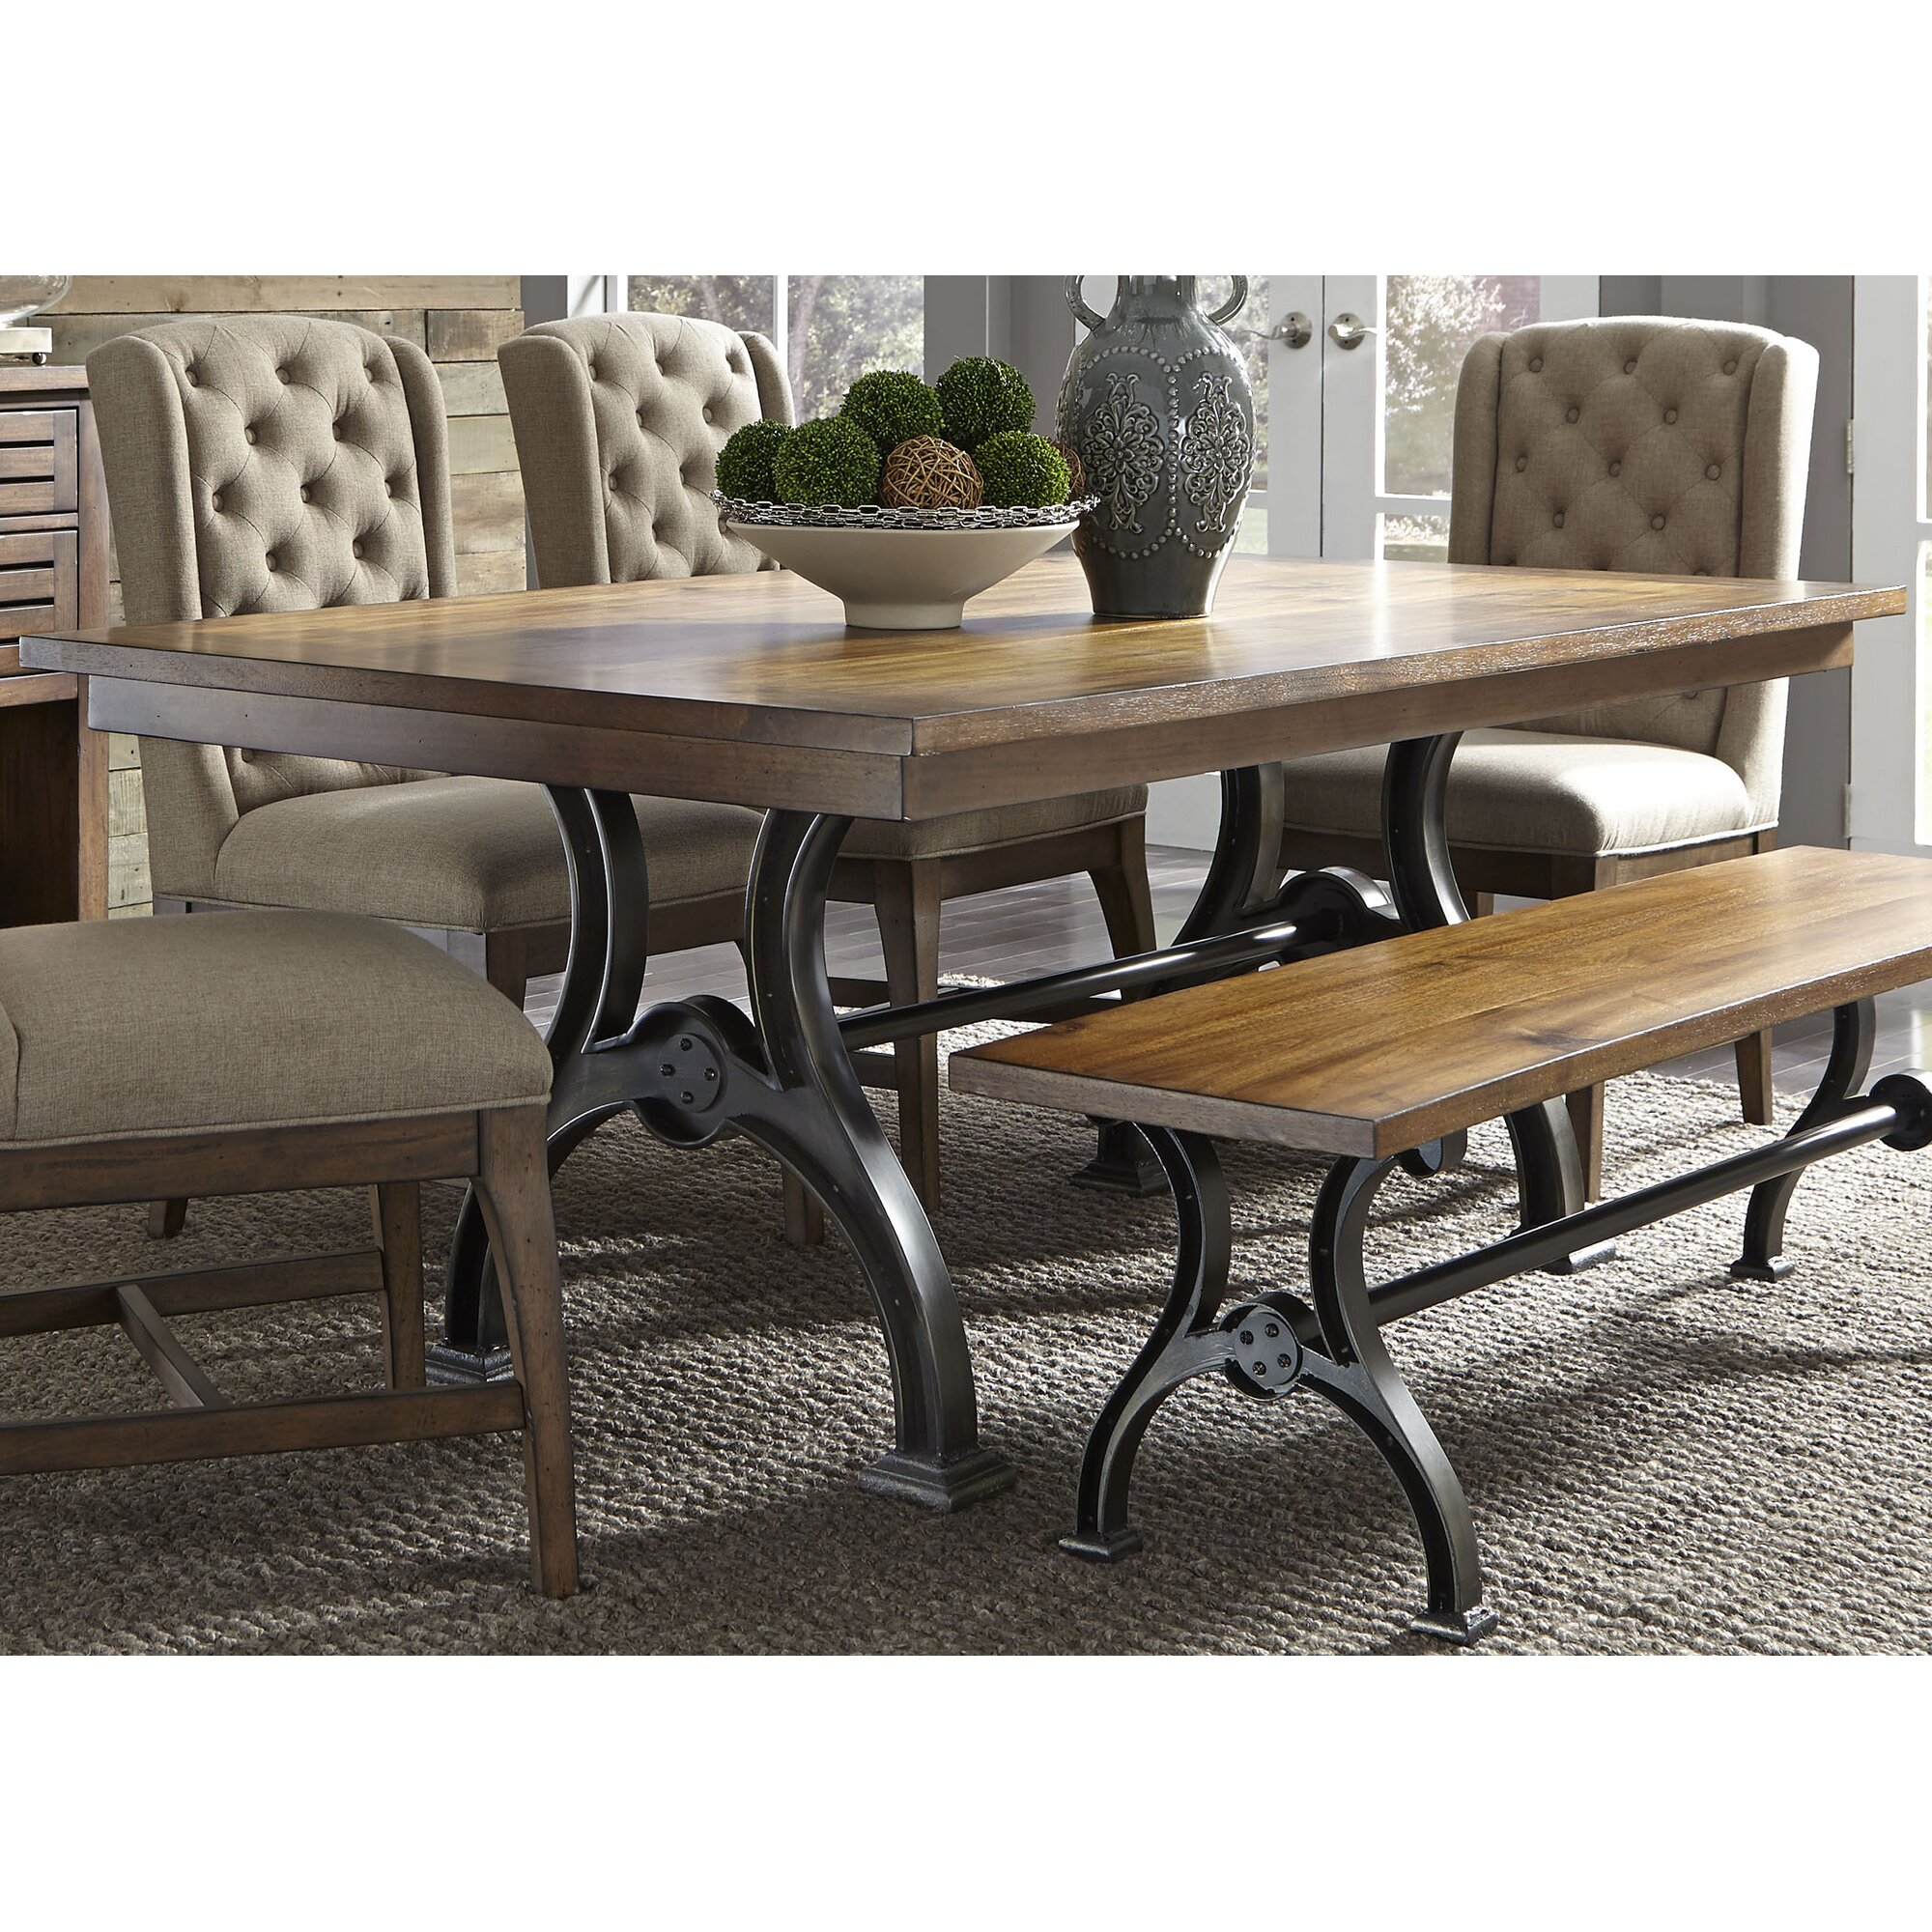 bryker 6 piece dining table set - Dining Room Tables Austin